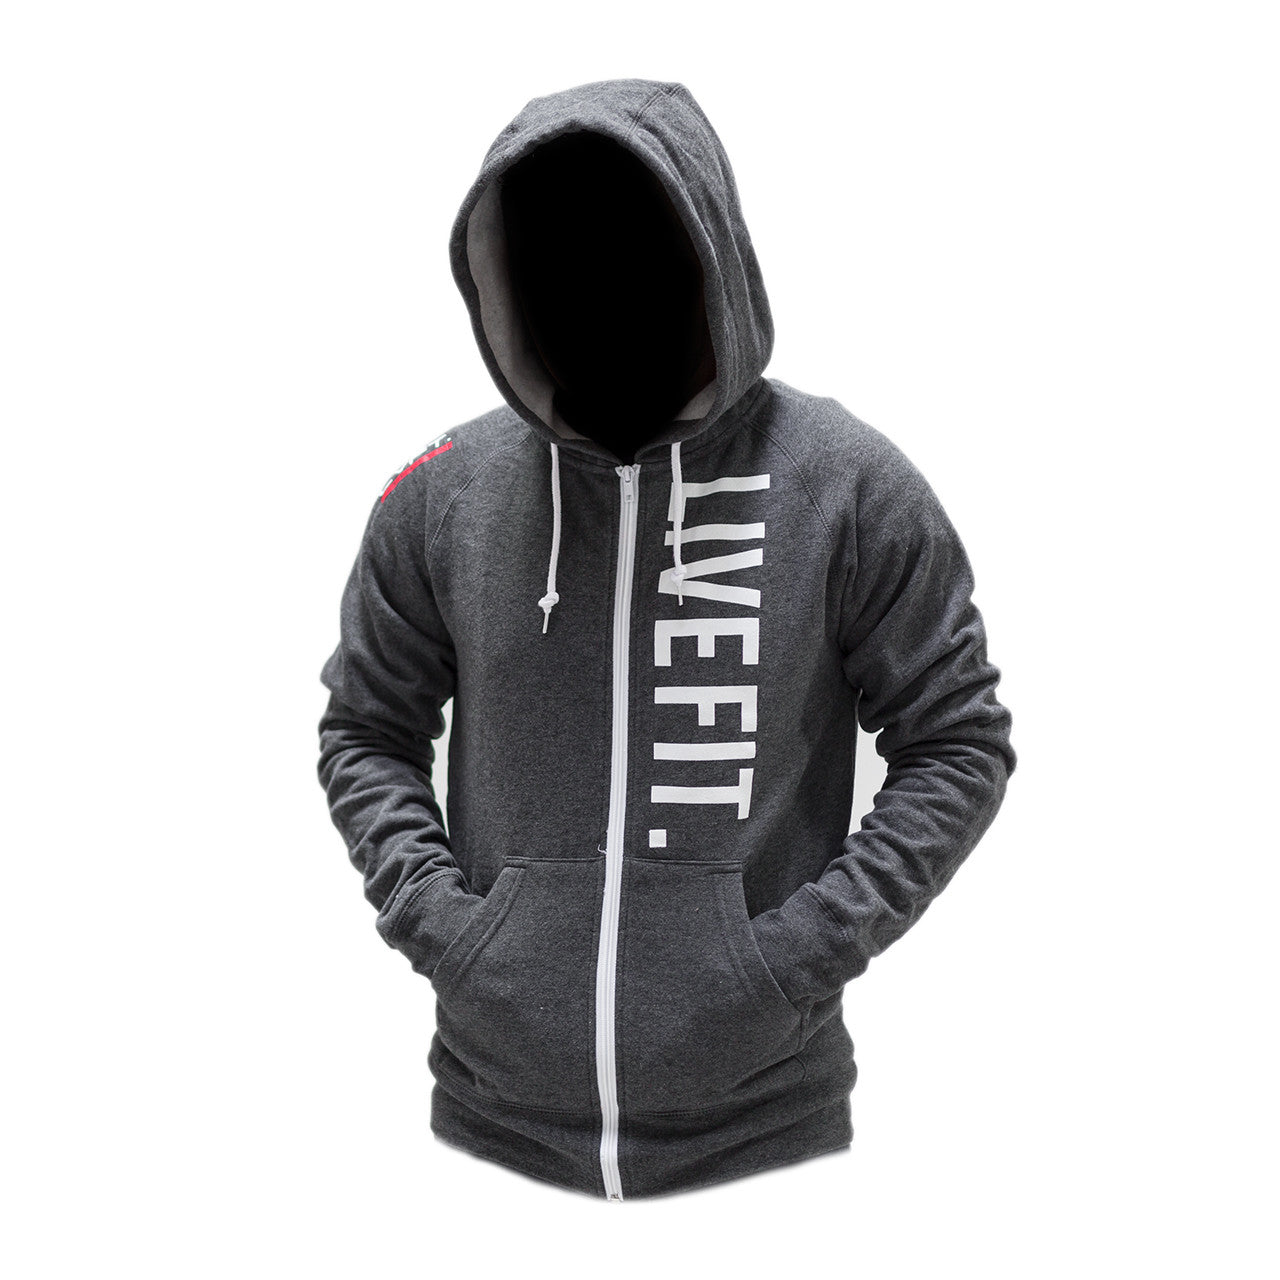 Live Fit Zip Up - Charcoal